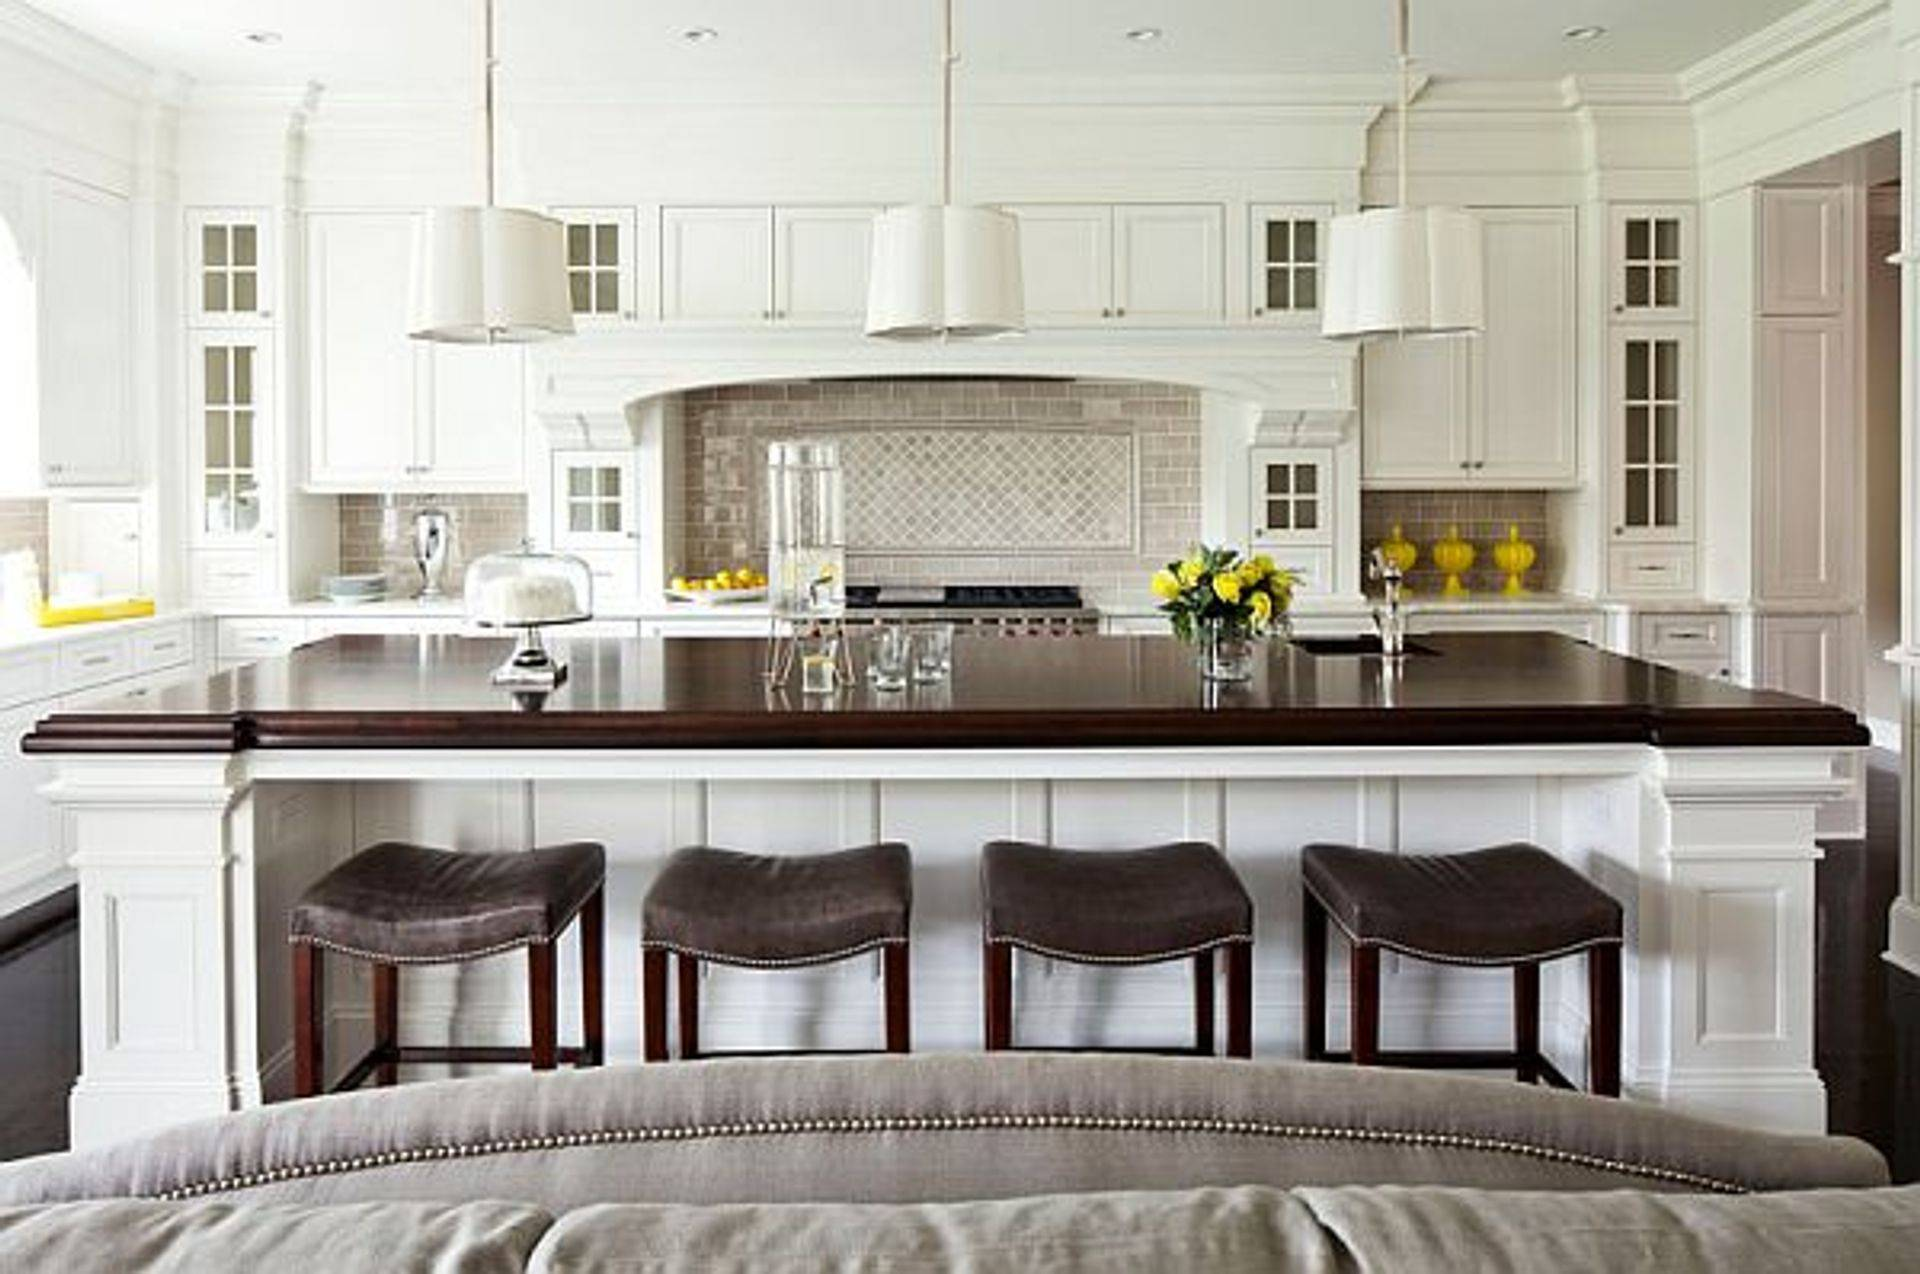 Kitchen Design Ideas Greenville, NC